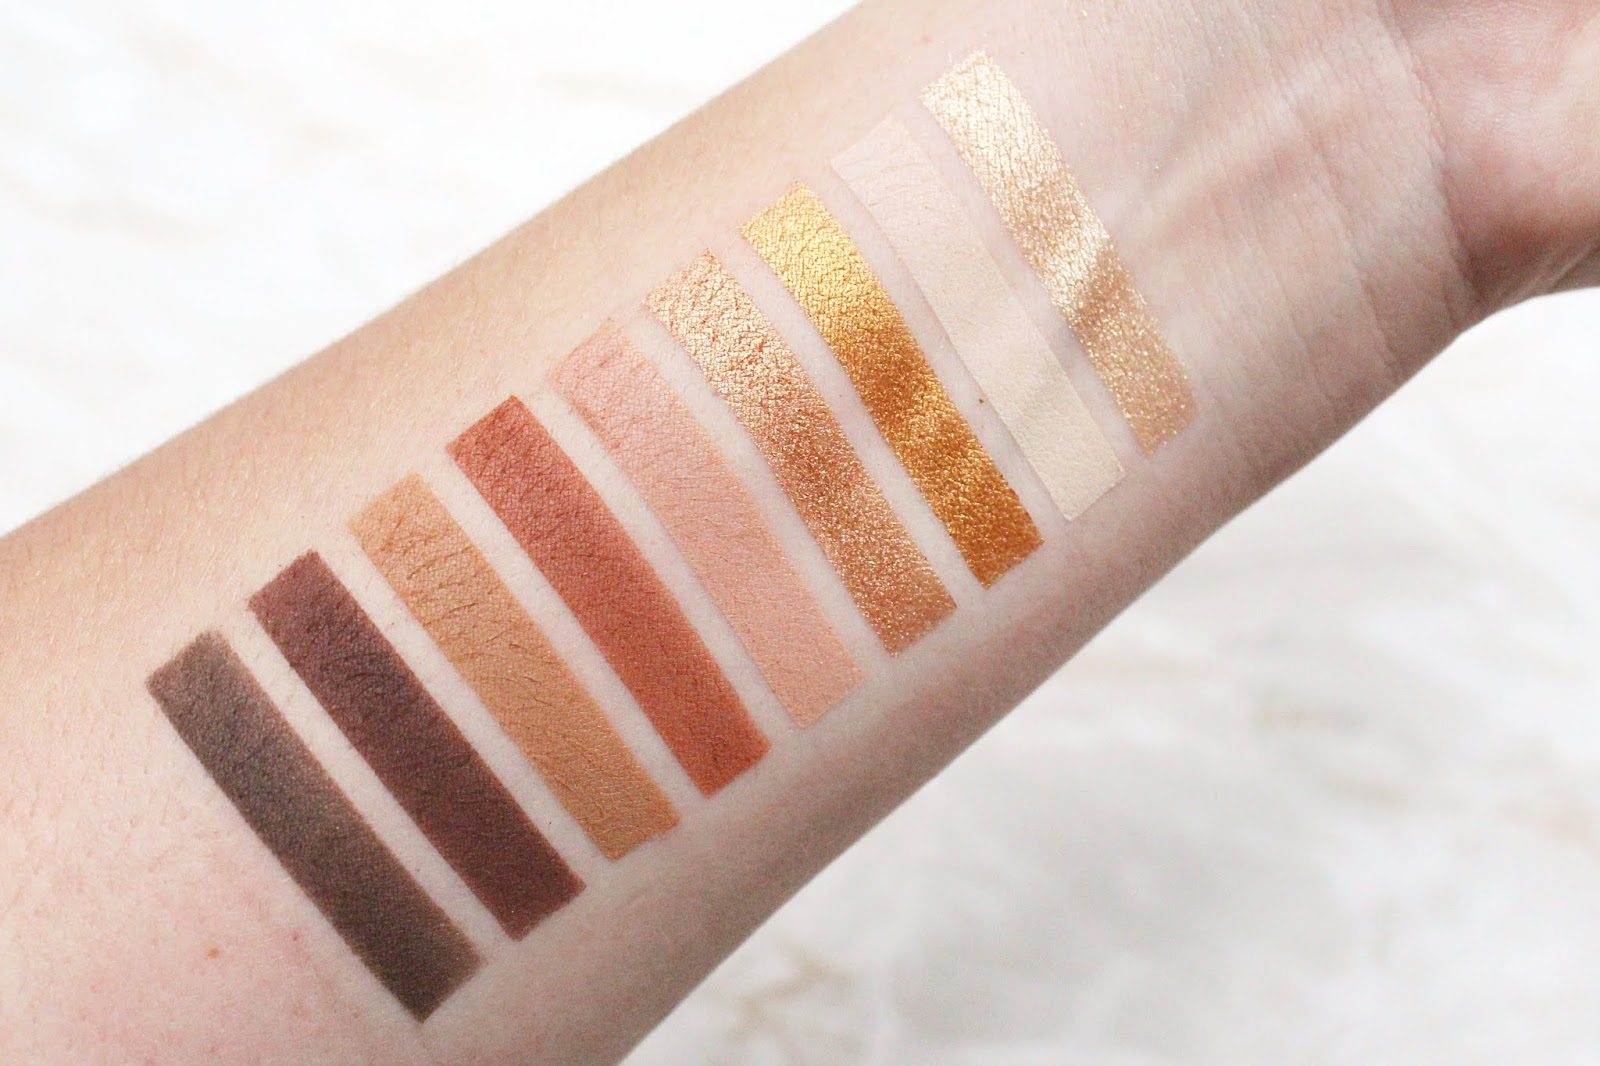 Profusion Mixed Metals Nude Palette Review